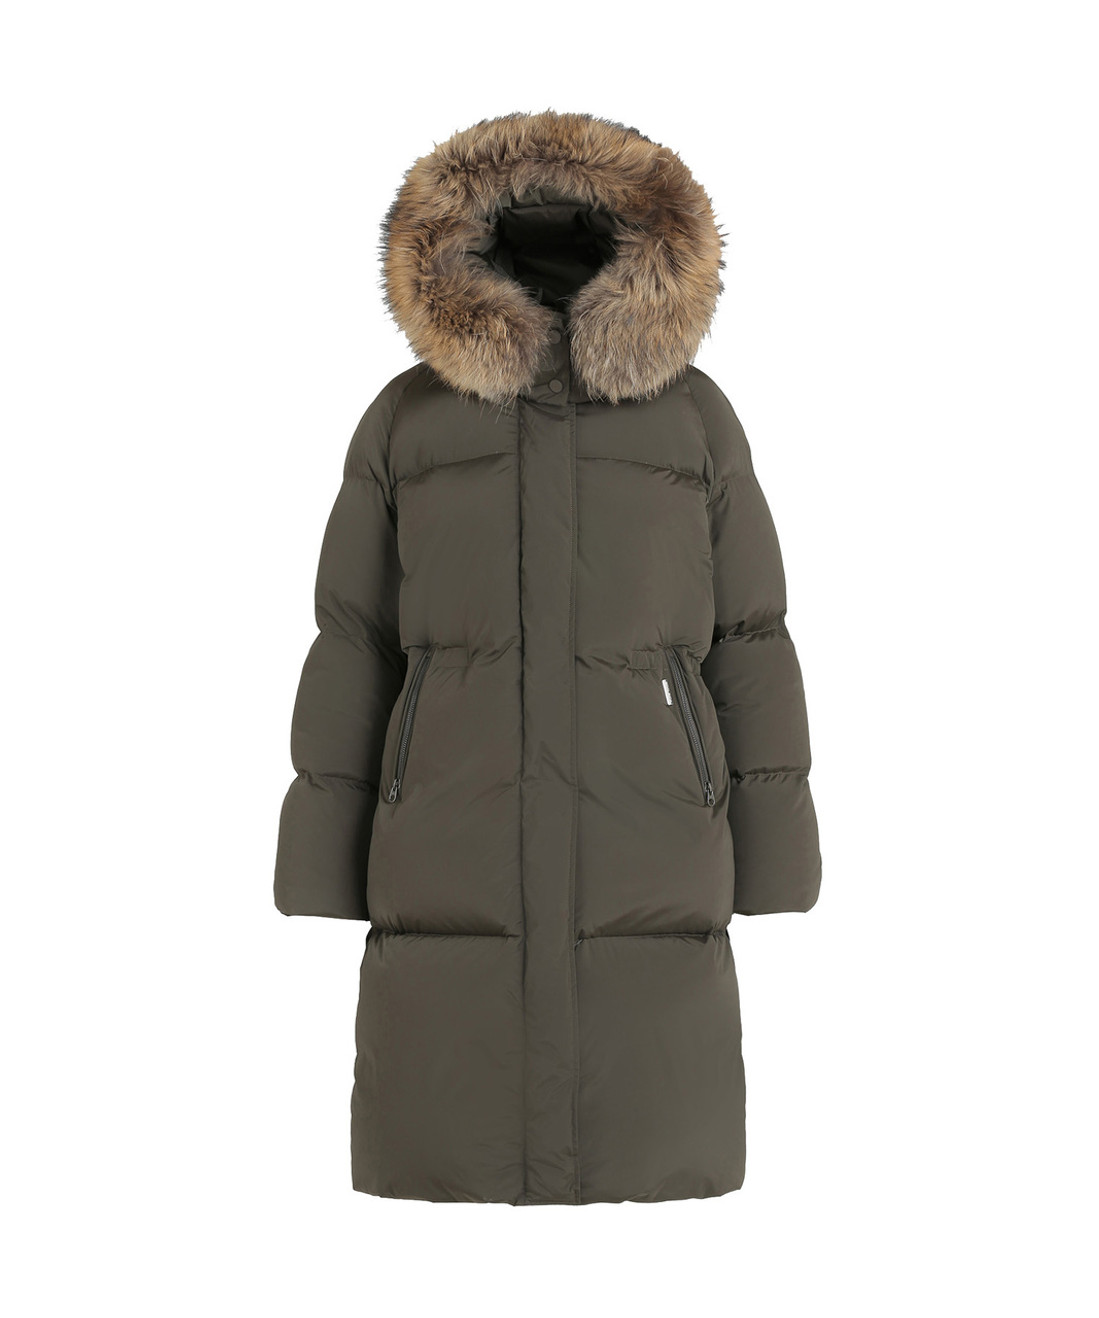 9f85798d5 Women's Ester Oversize Down Coat - John Rich & Bros.